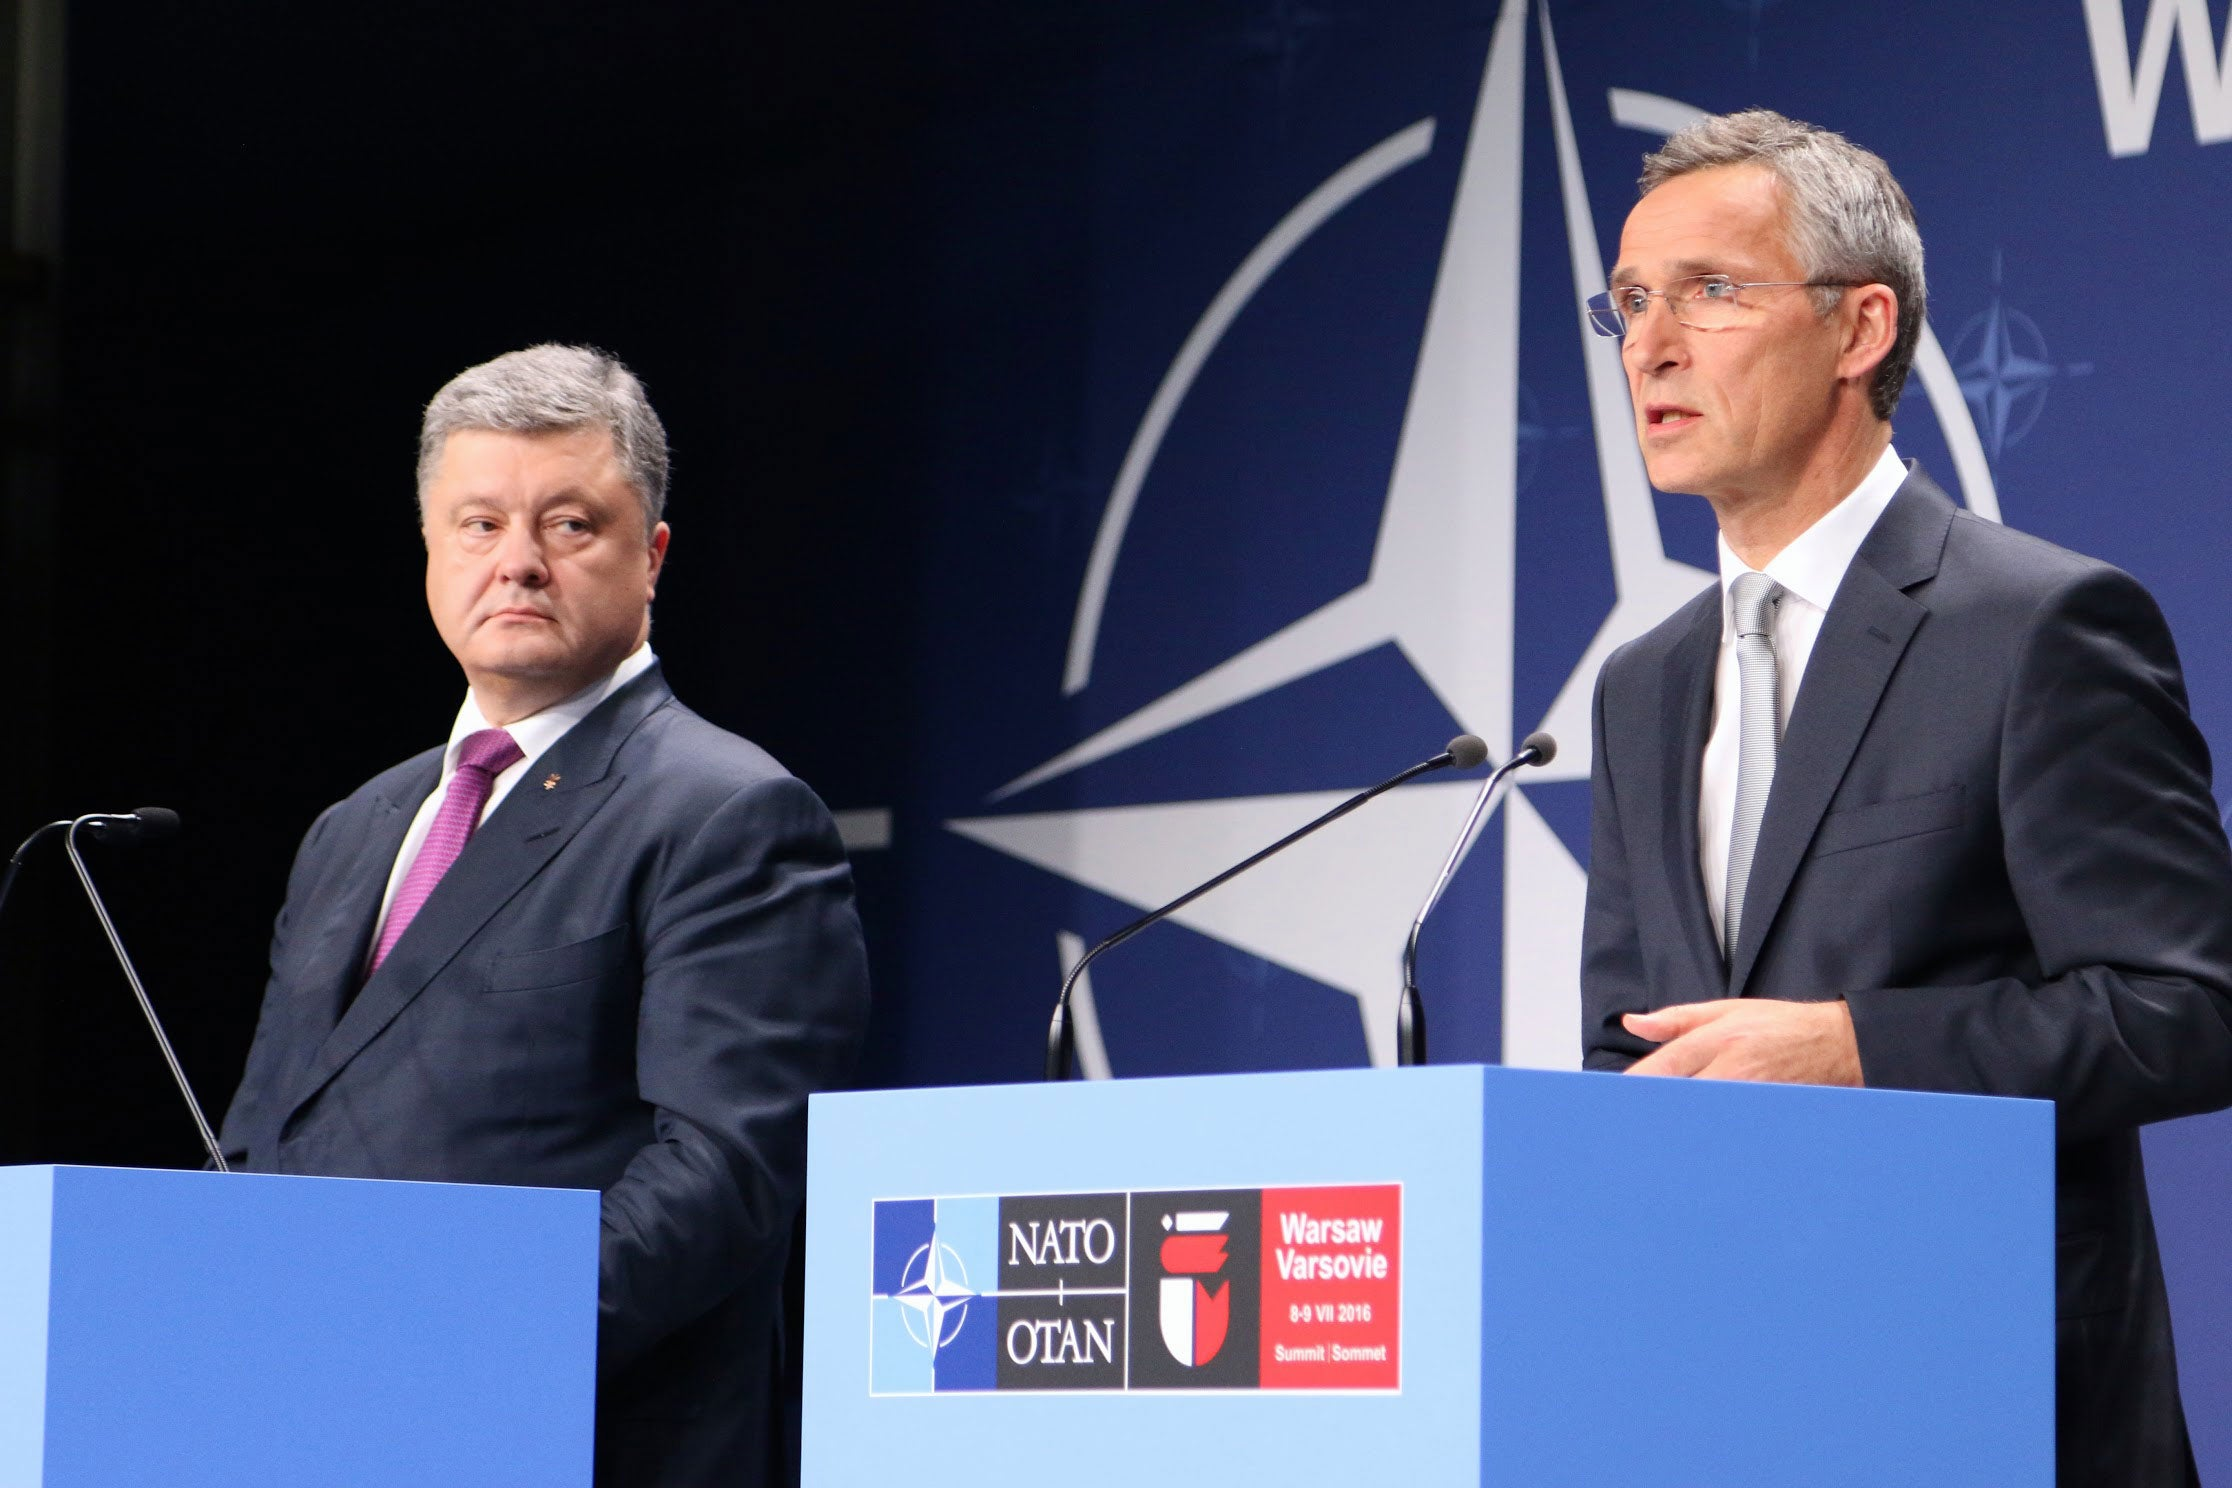 Ukrainian President Petro Poroshenko (left) speaks alongside NATO Secretary General Jens Stoltenberg at the July 2016 NATO summit in Warsaw, Poland. (Photos: Nolan Peterson/The Daily Signal)